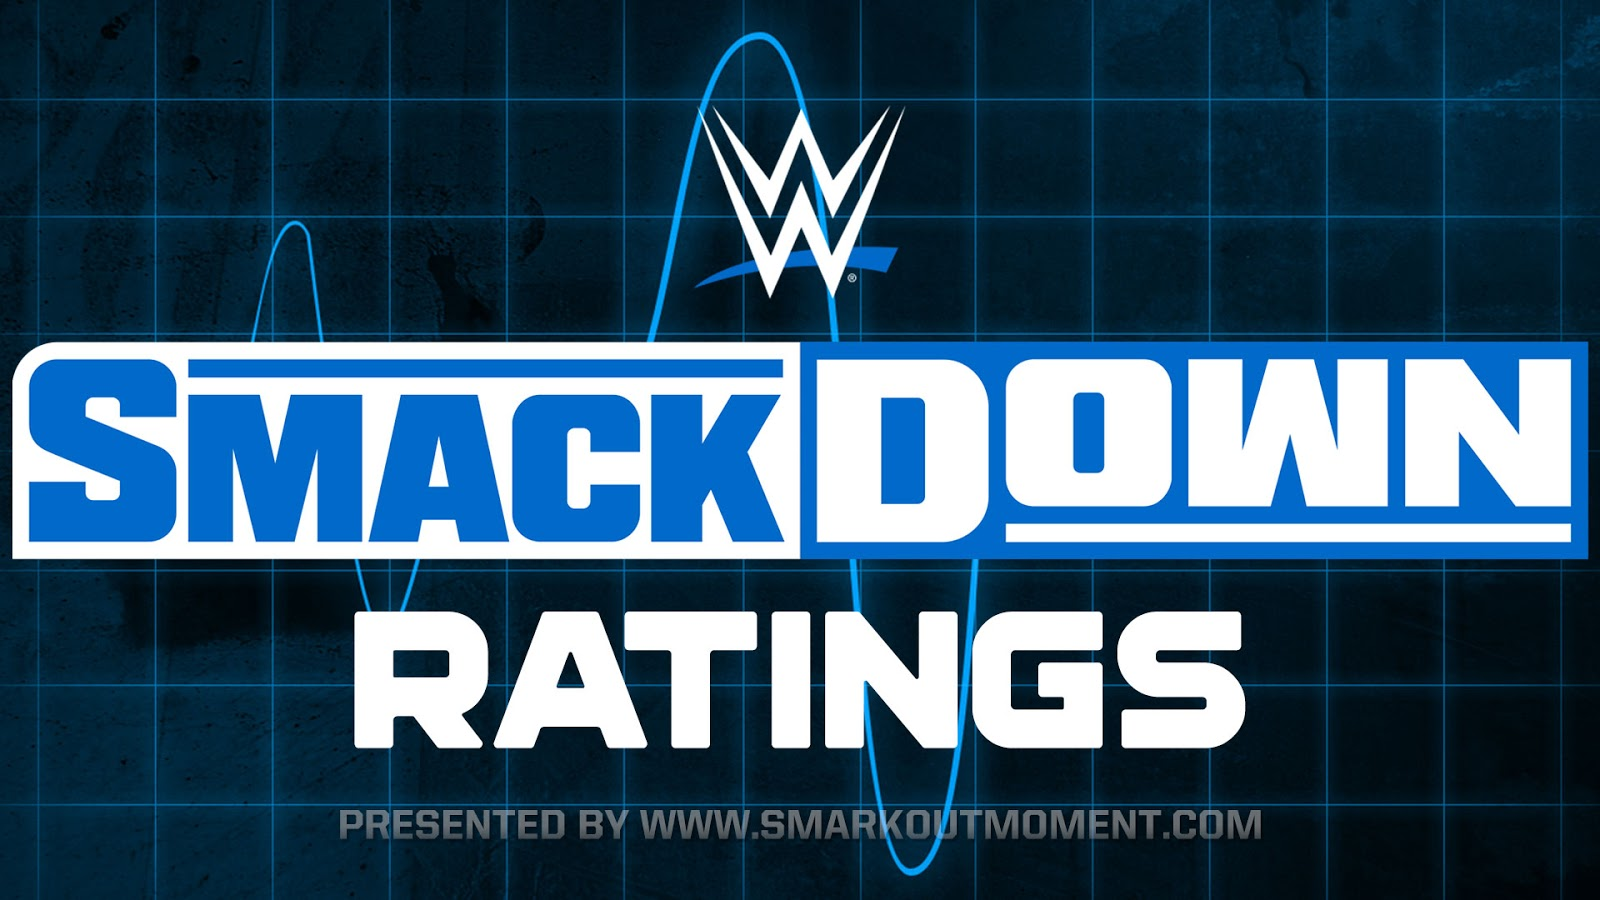 WWE SmackDown TV ratings